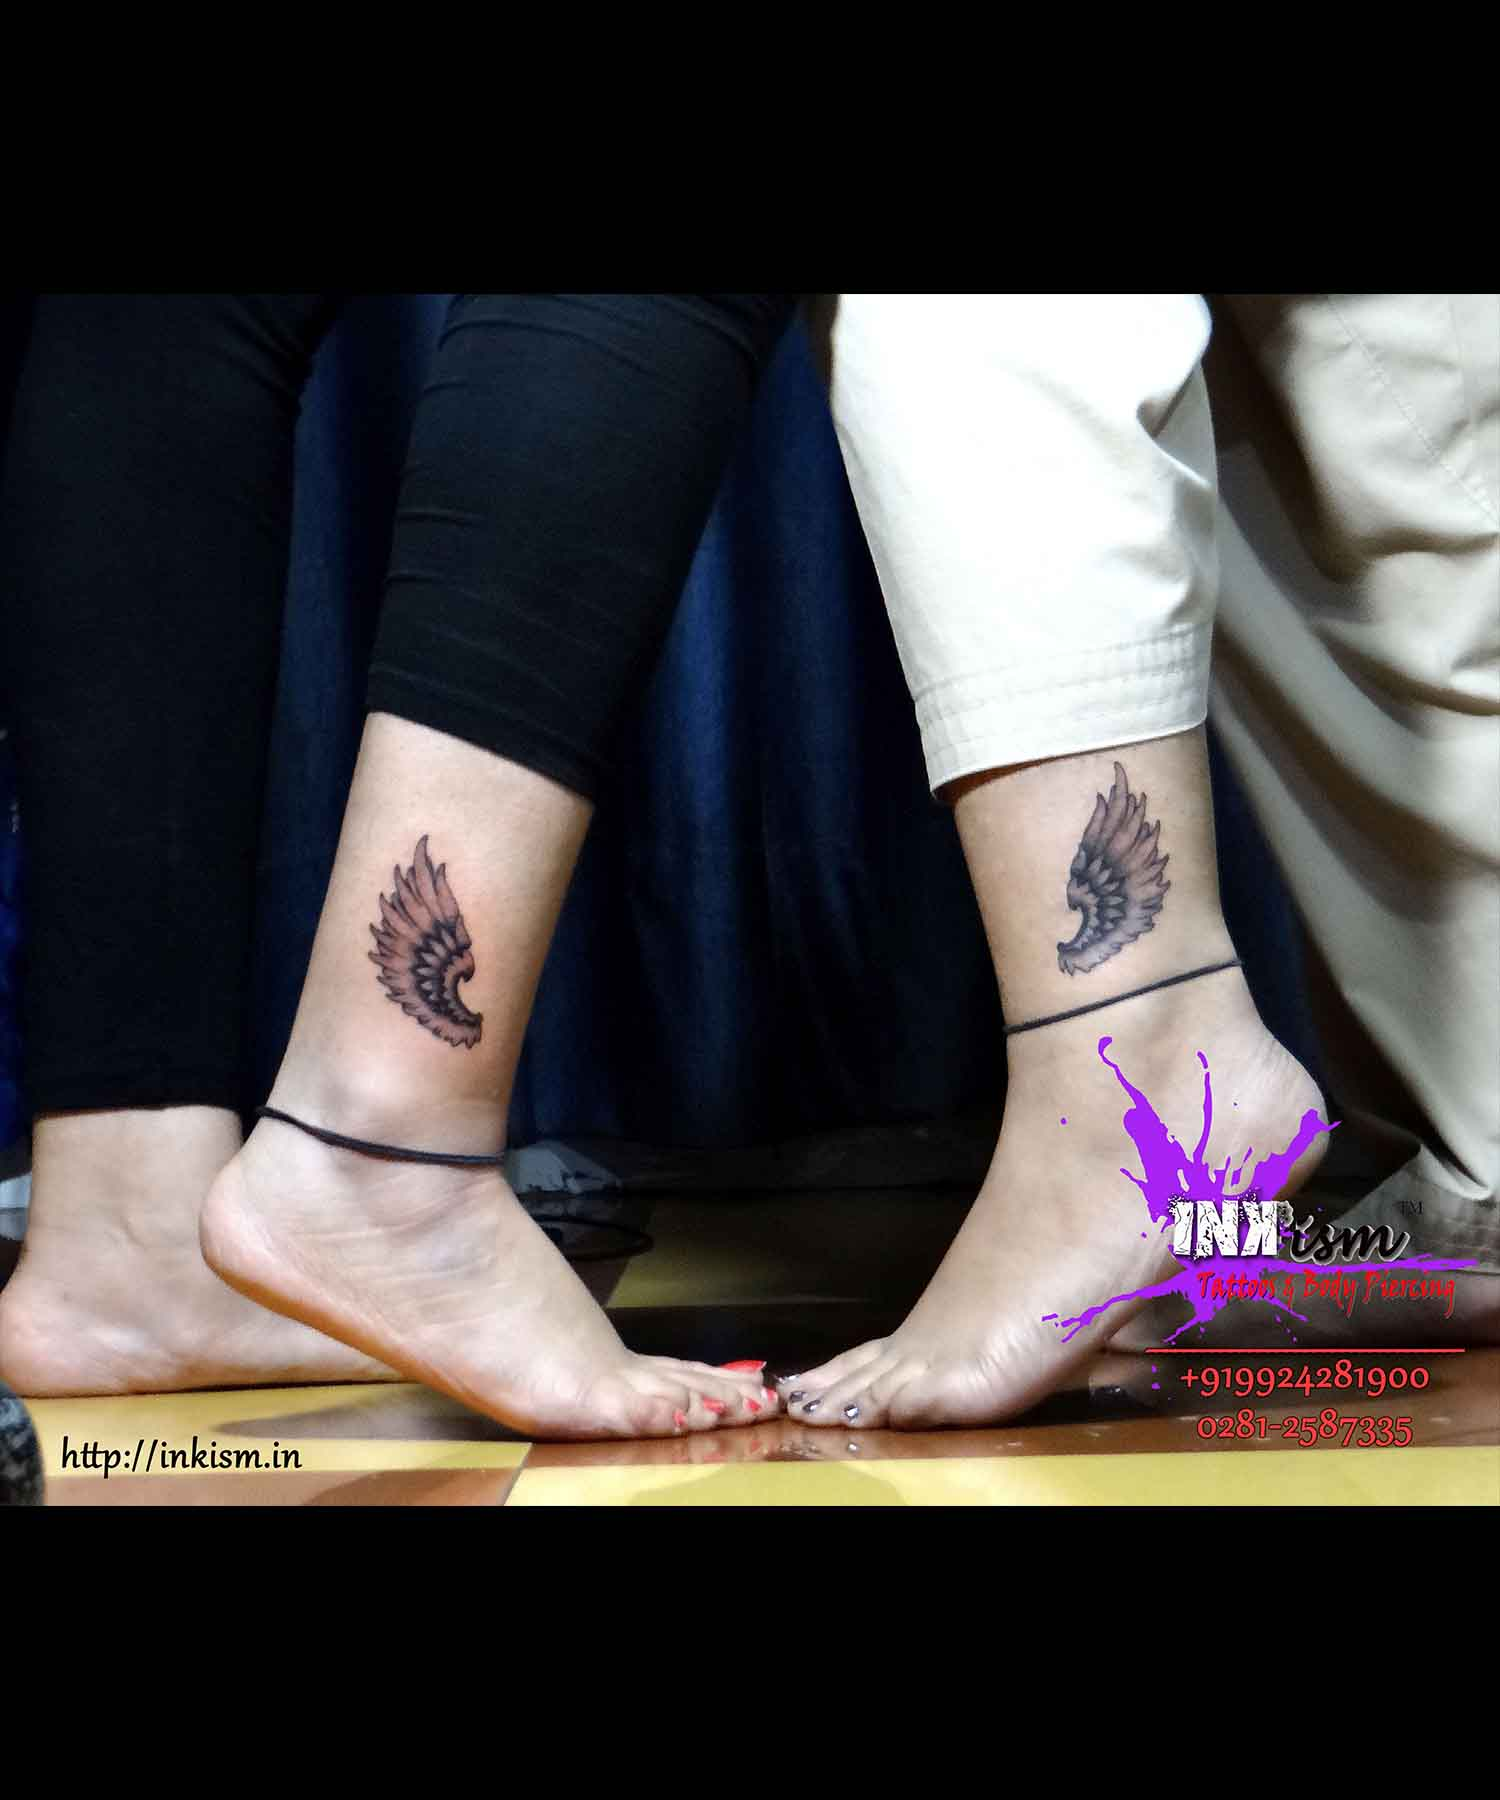 Wings Tattoo, Best Friend tattoo, Inkism tattoo and body piercing rajkot gujarat